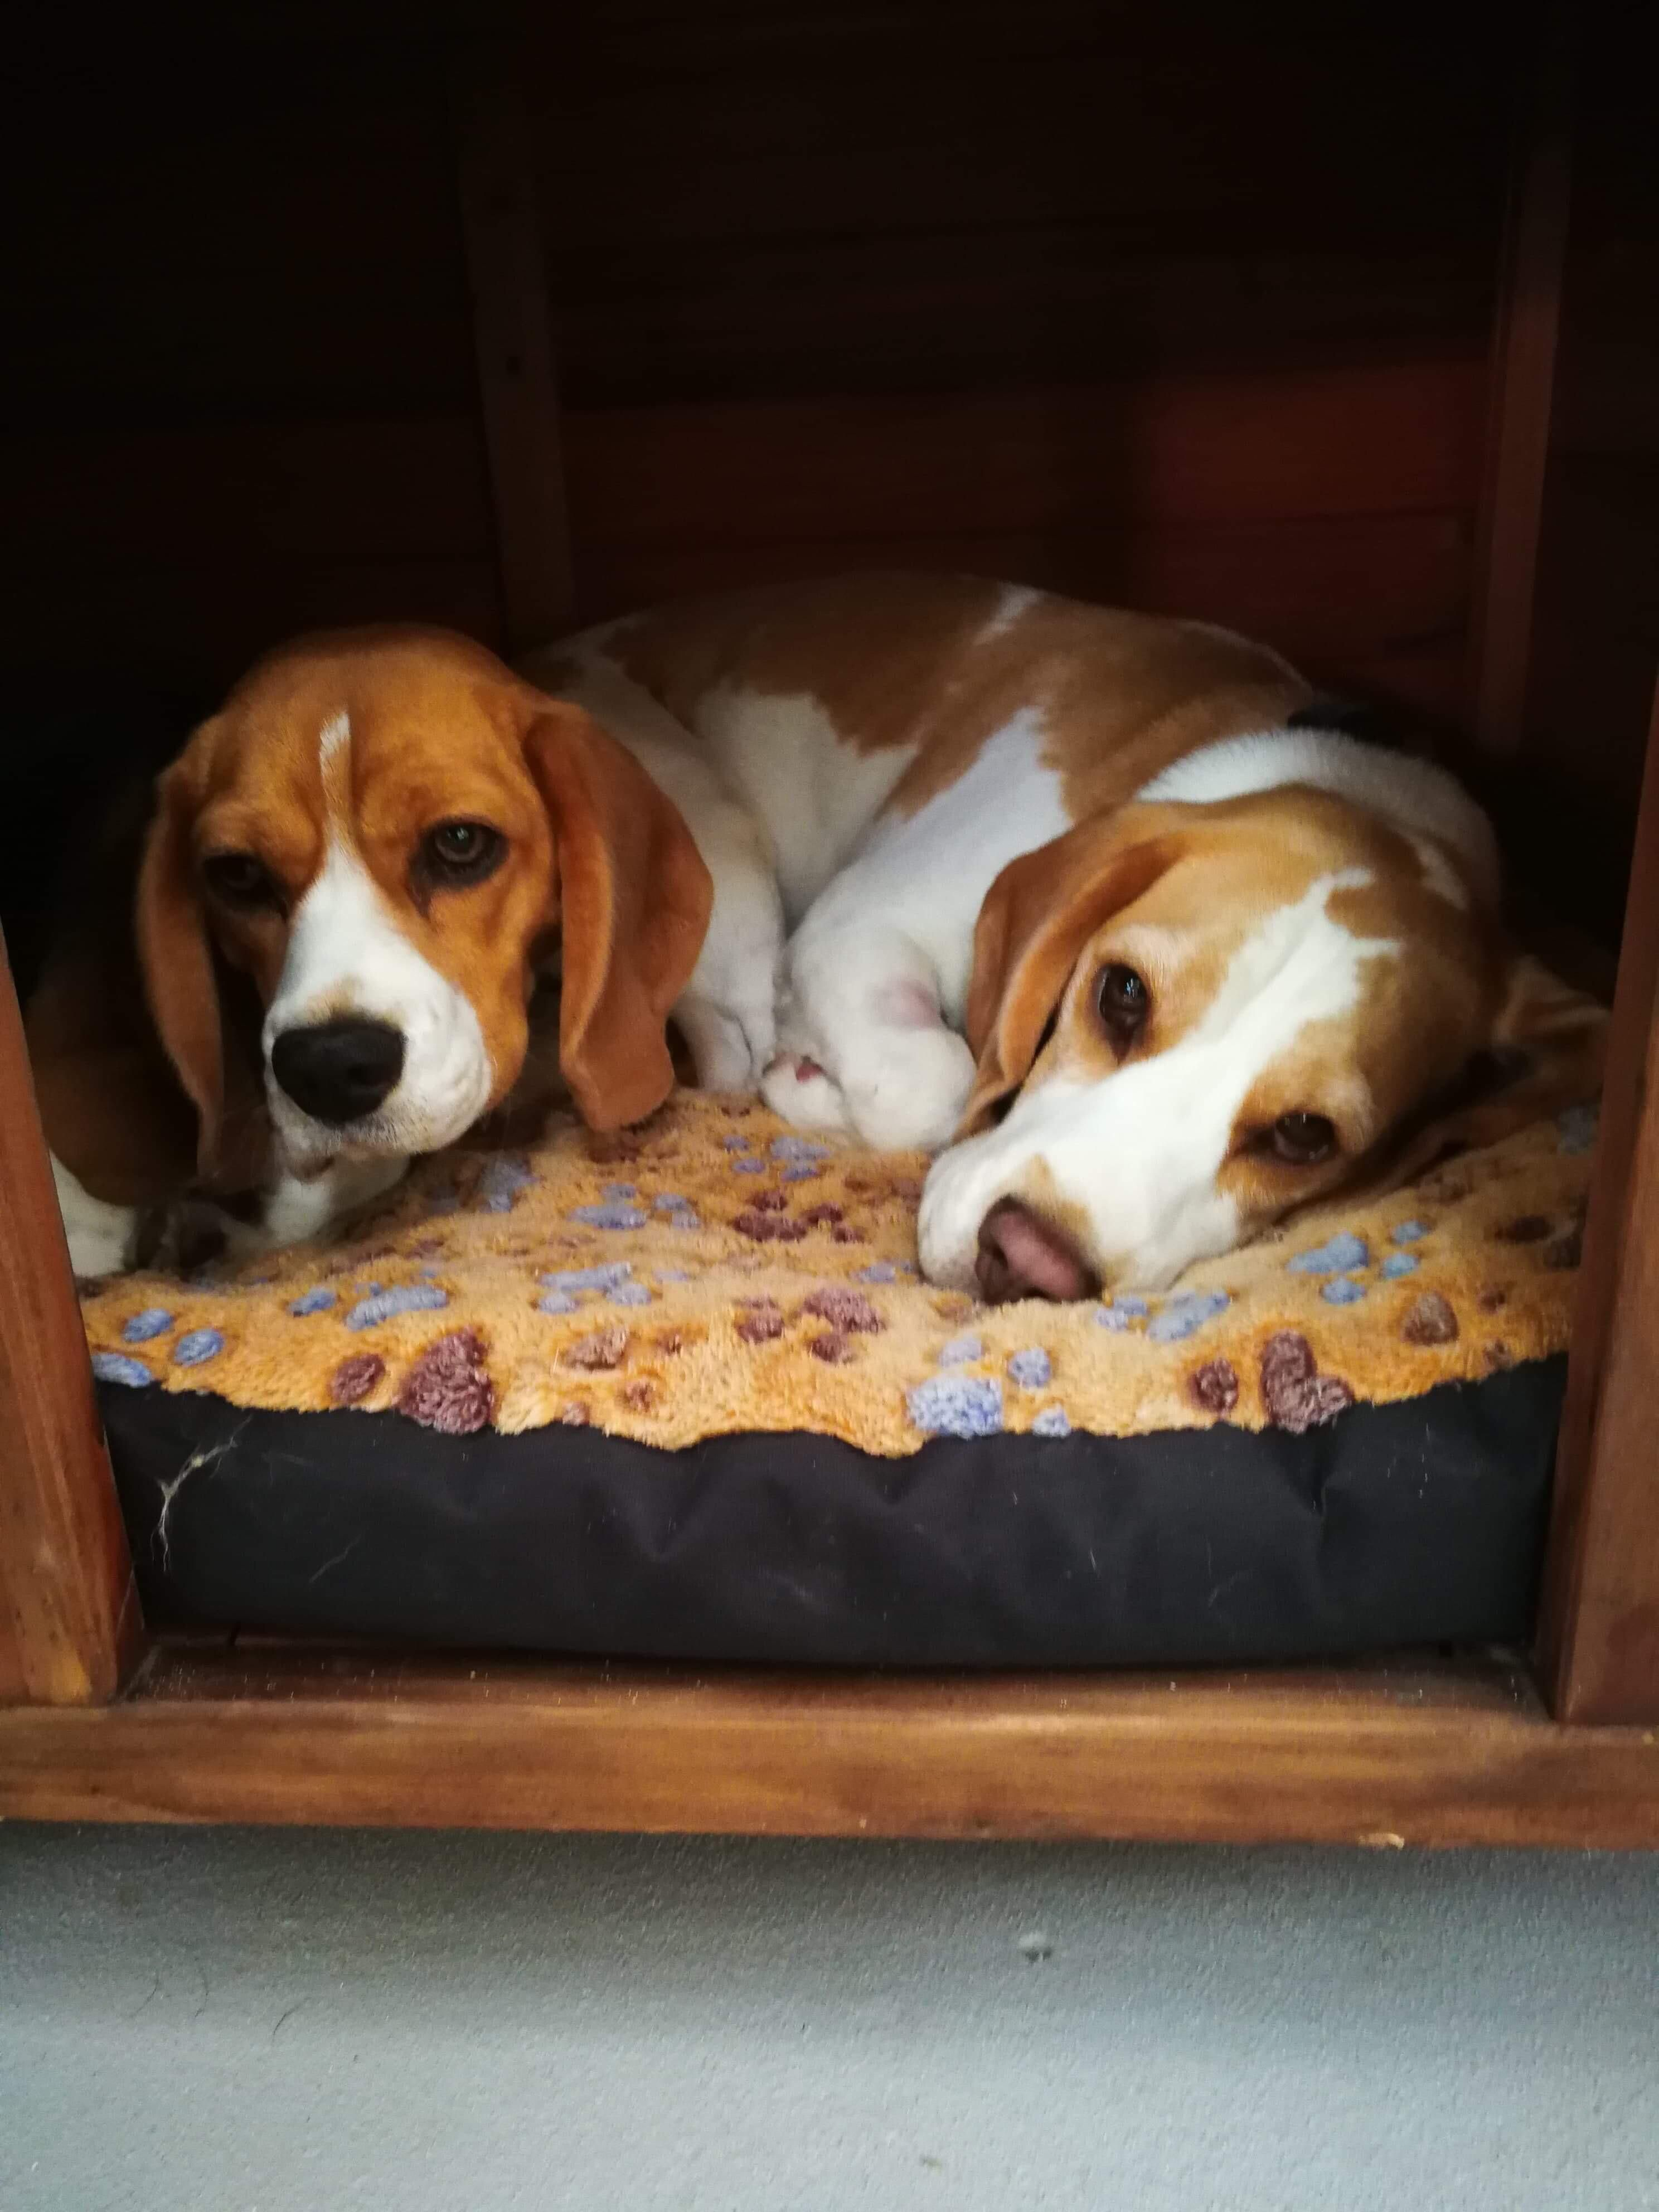 My Girls Sydney And Melbourne Claiming The Doghouse And Daycare Hello There Bright People Are You Doglover Or Have You Dog Houses Beagle Hound Beagle Dog